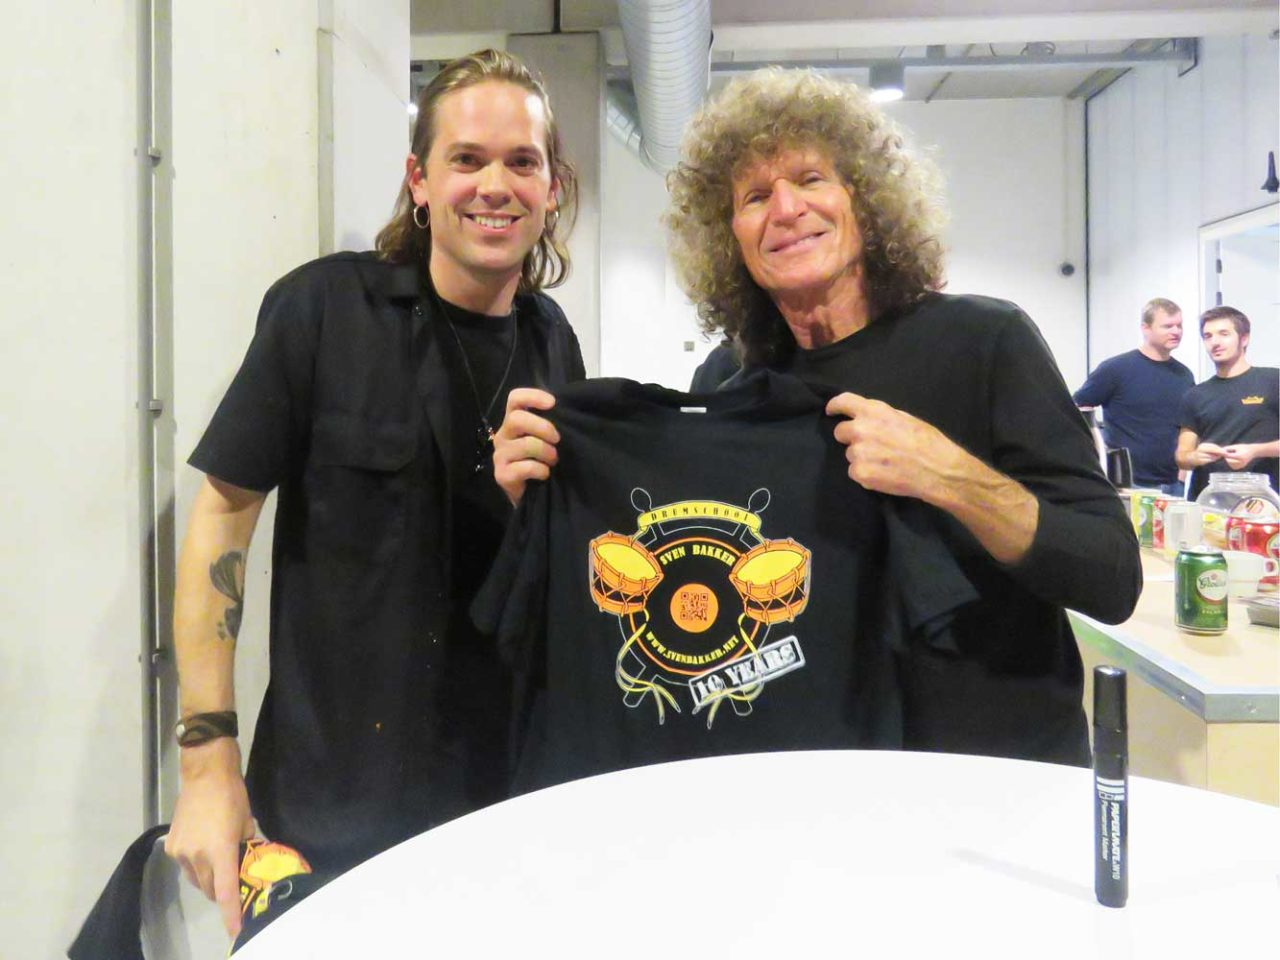 Tommy Aldridge with official shirt with logo 10 years  Drum school Sven Bakker